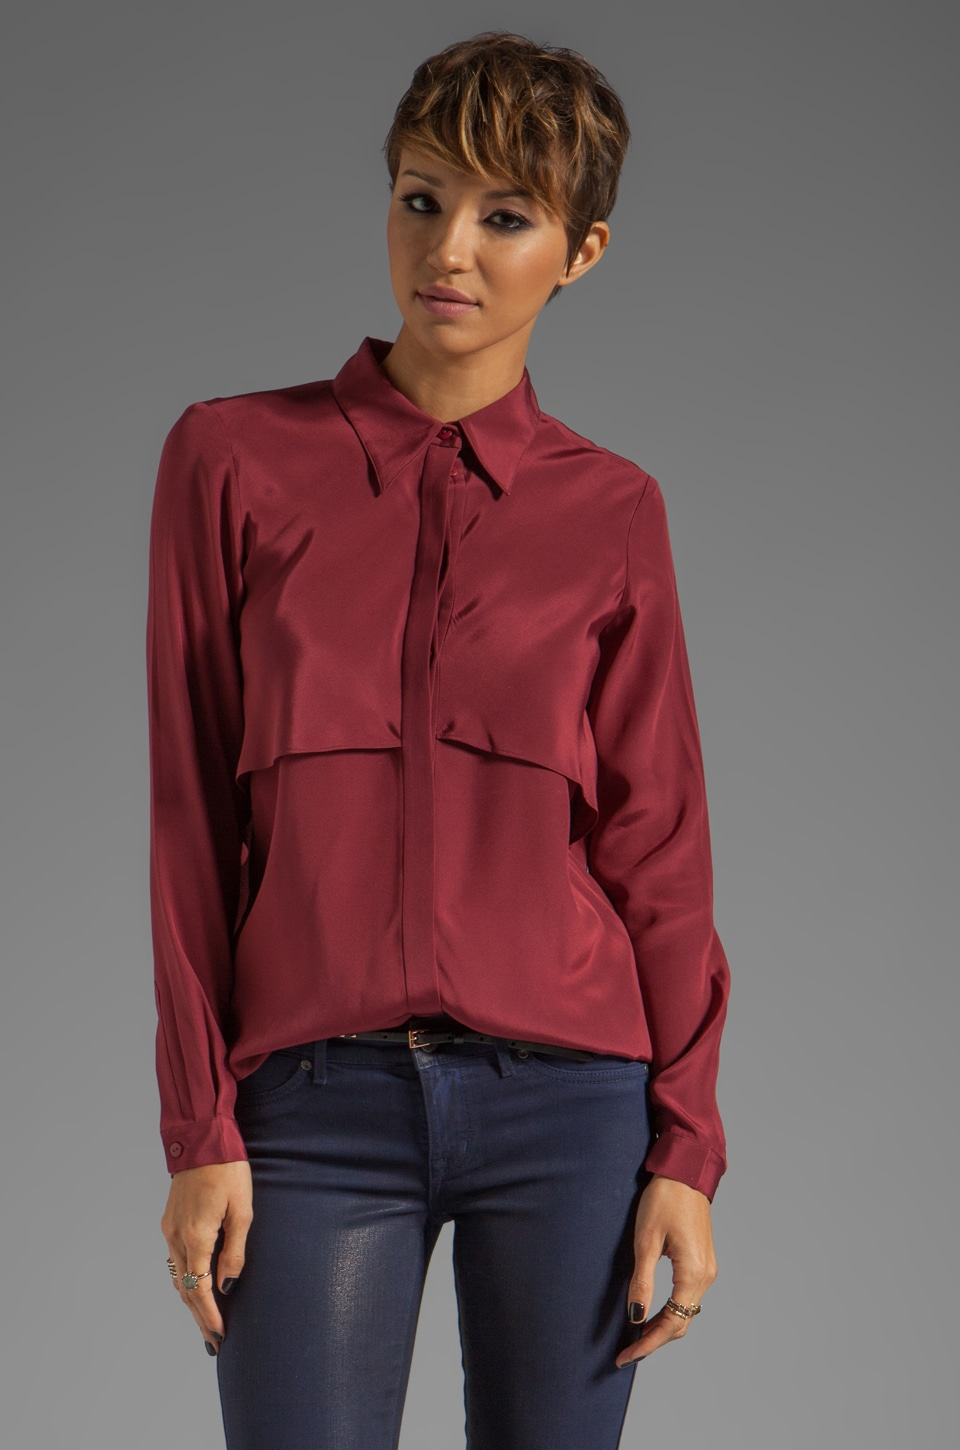 Tibi Solid Silk Drape Blouse in Cranberry